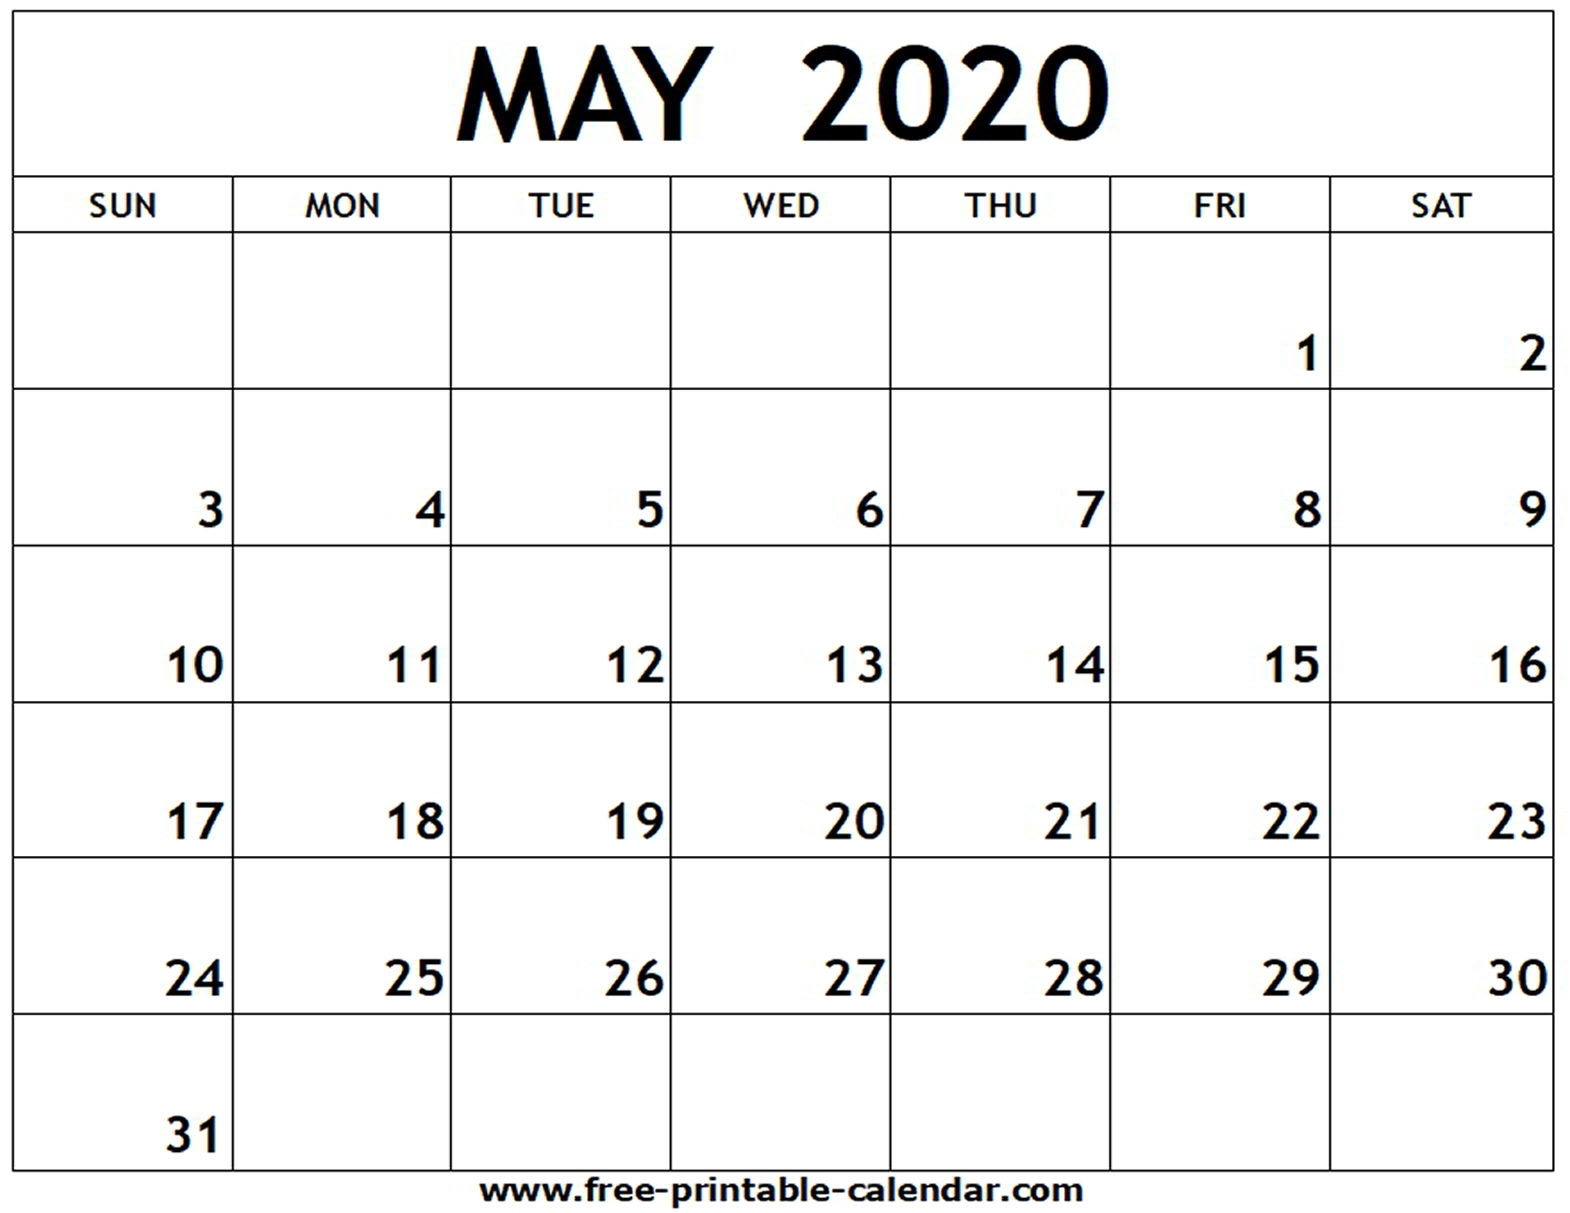 Blank Calendar March April May 2020